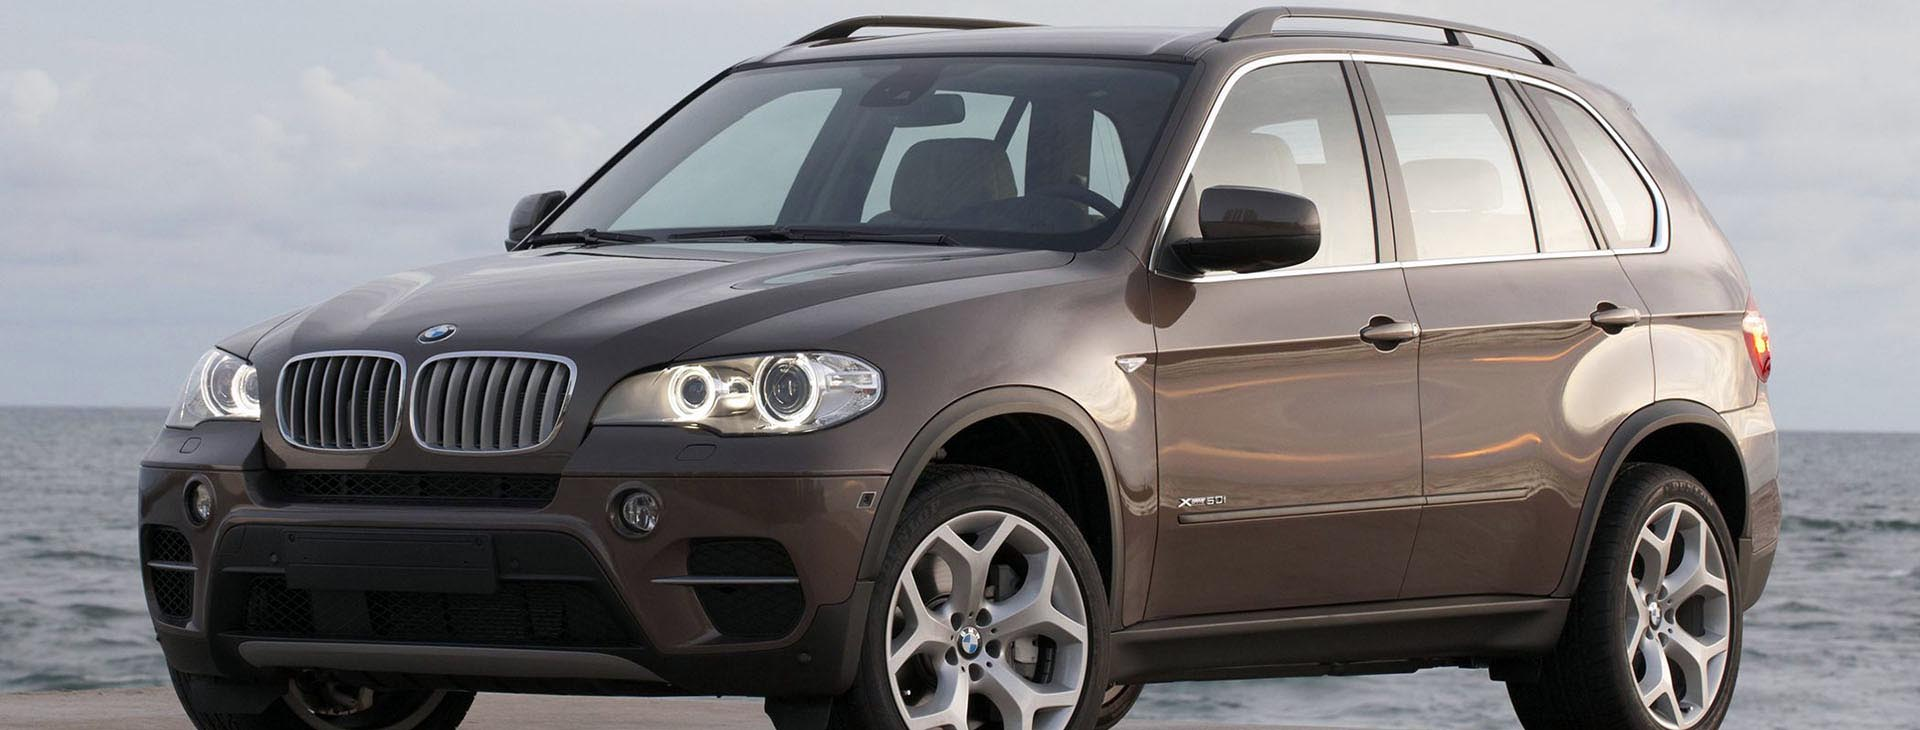 Rent a car in Athens / Greece, Greece